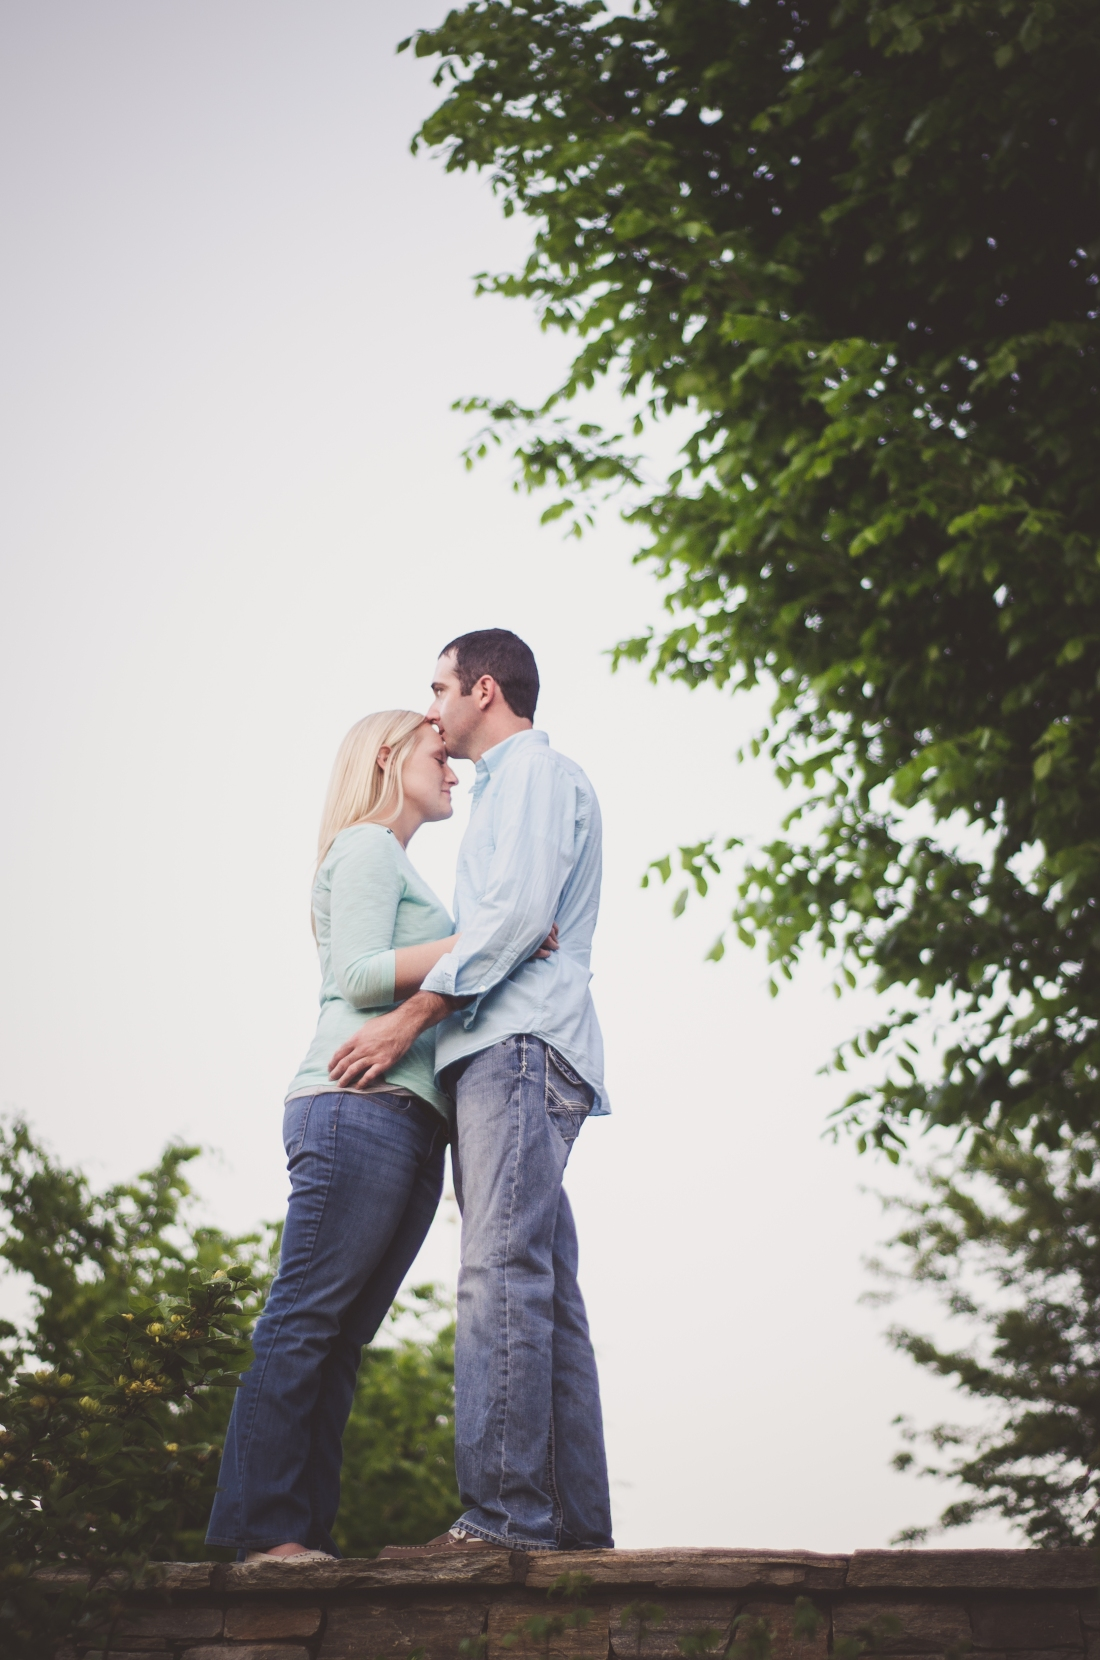 BeauJessEngagement-23